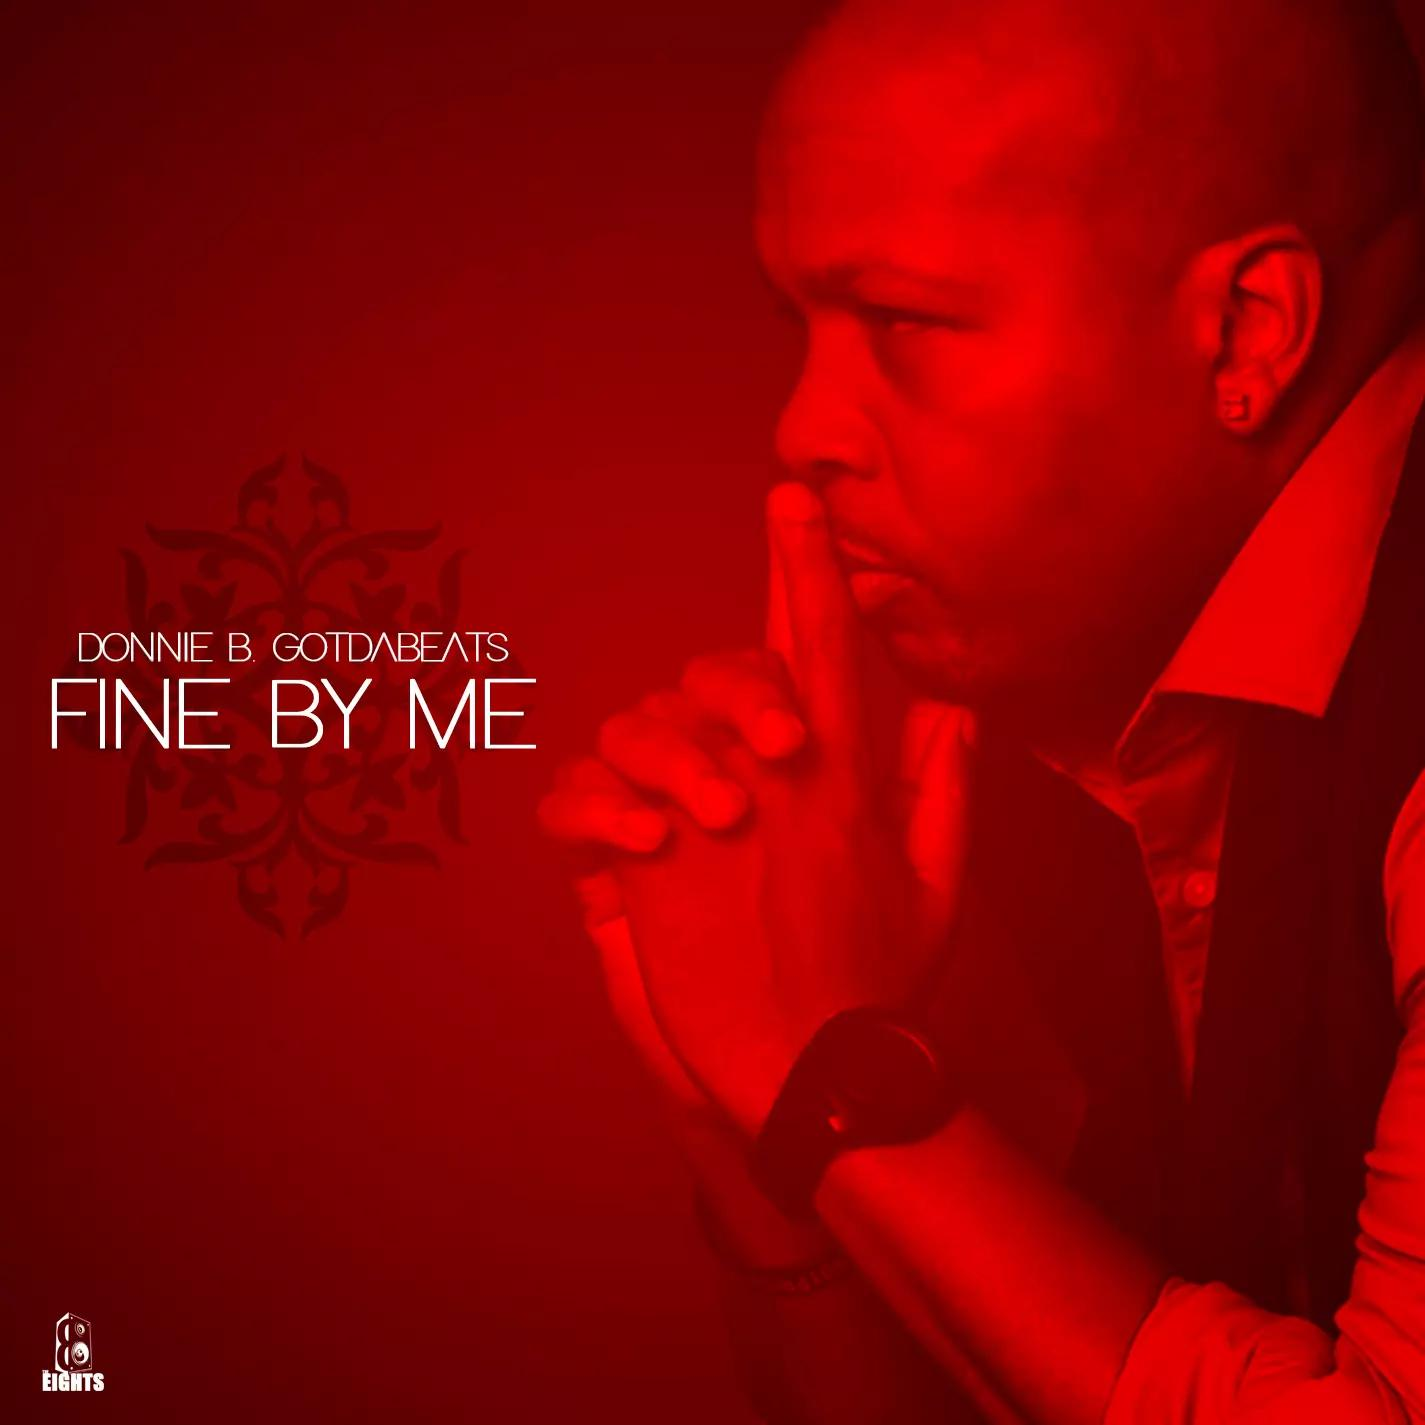 """Donnie B. GotDaBeats Releases """"Fine By Me"""""""